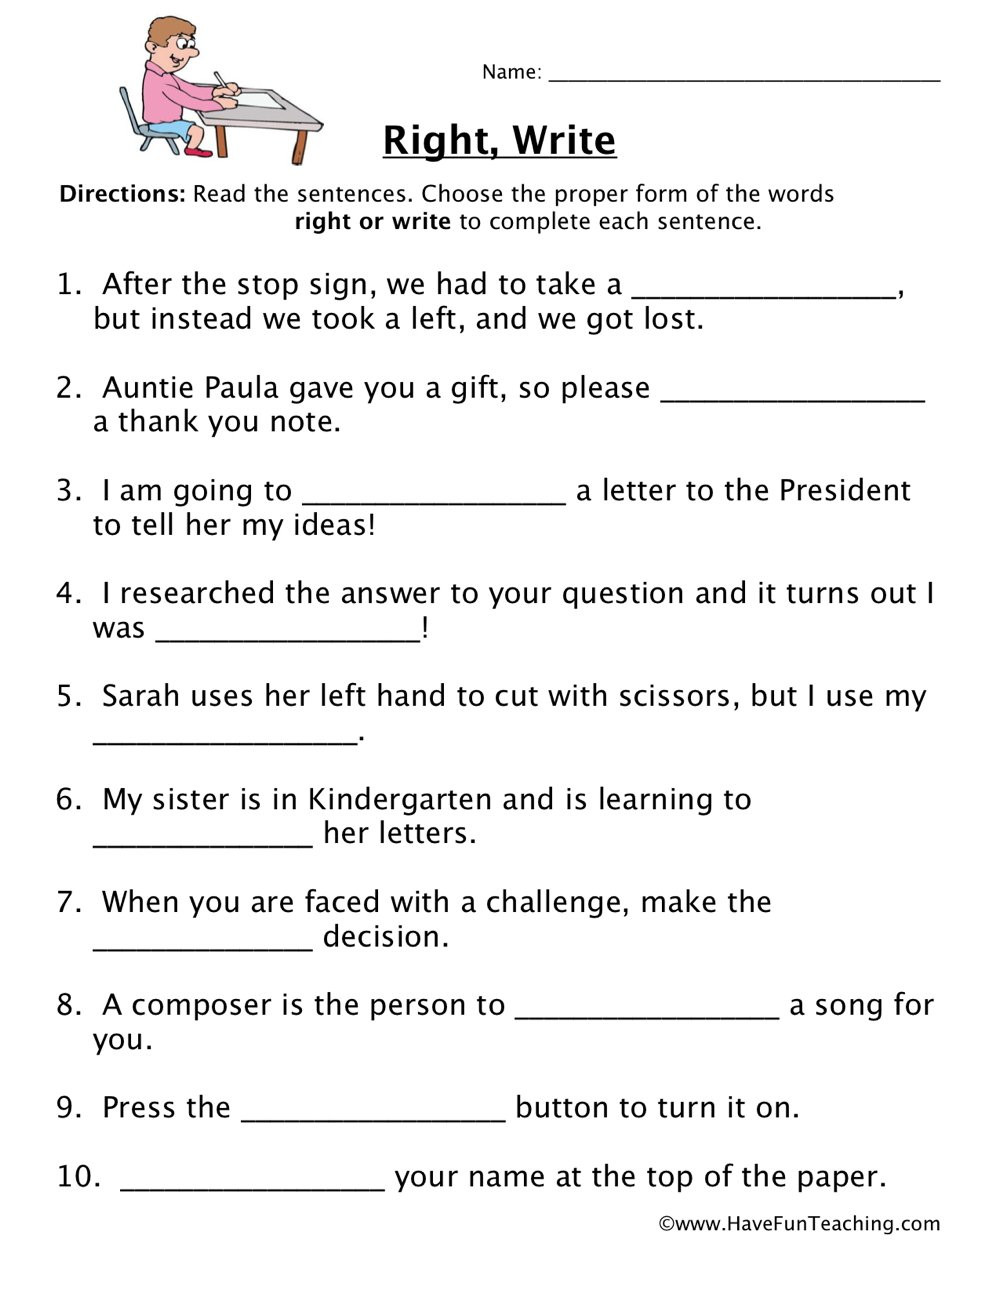 Homonyms Worksheets 5th Grade Right Write Homophones Worksheet